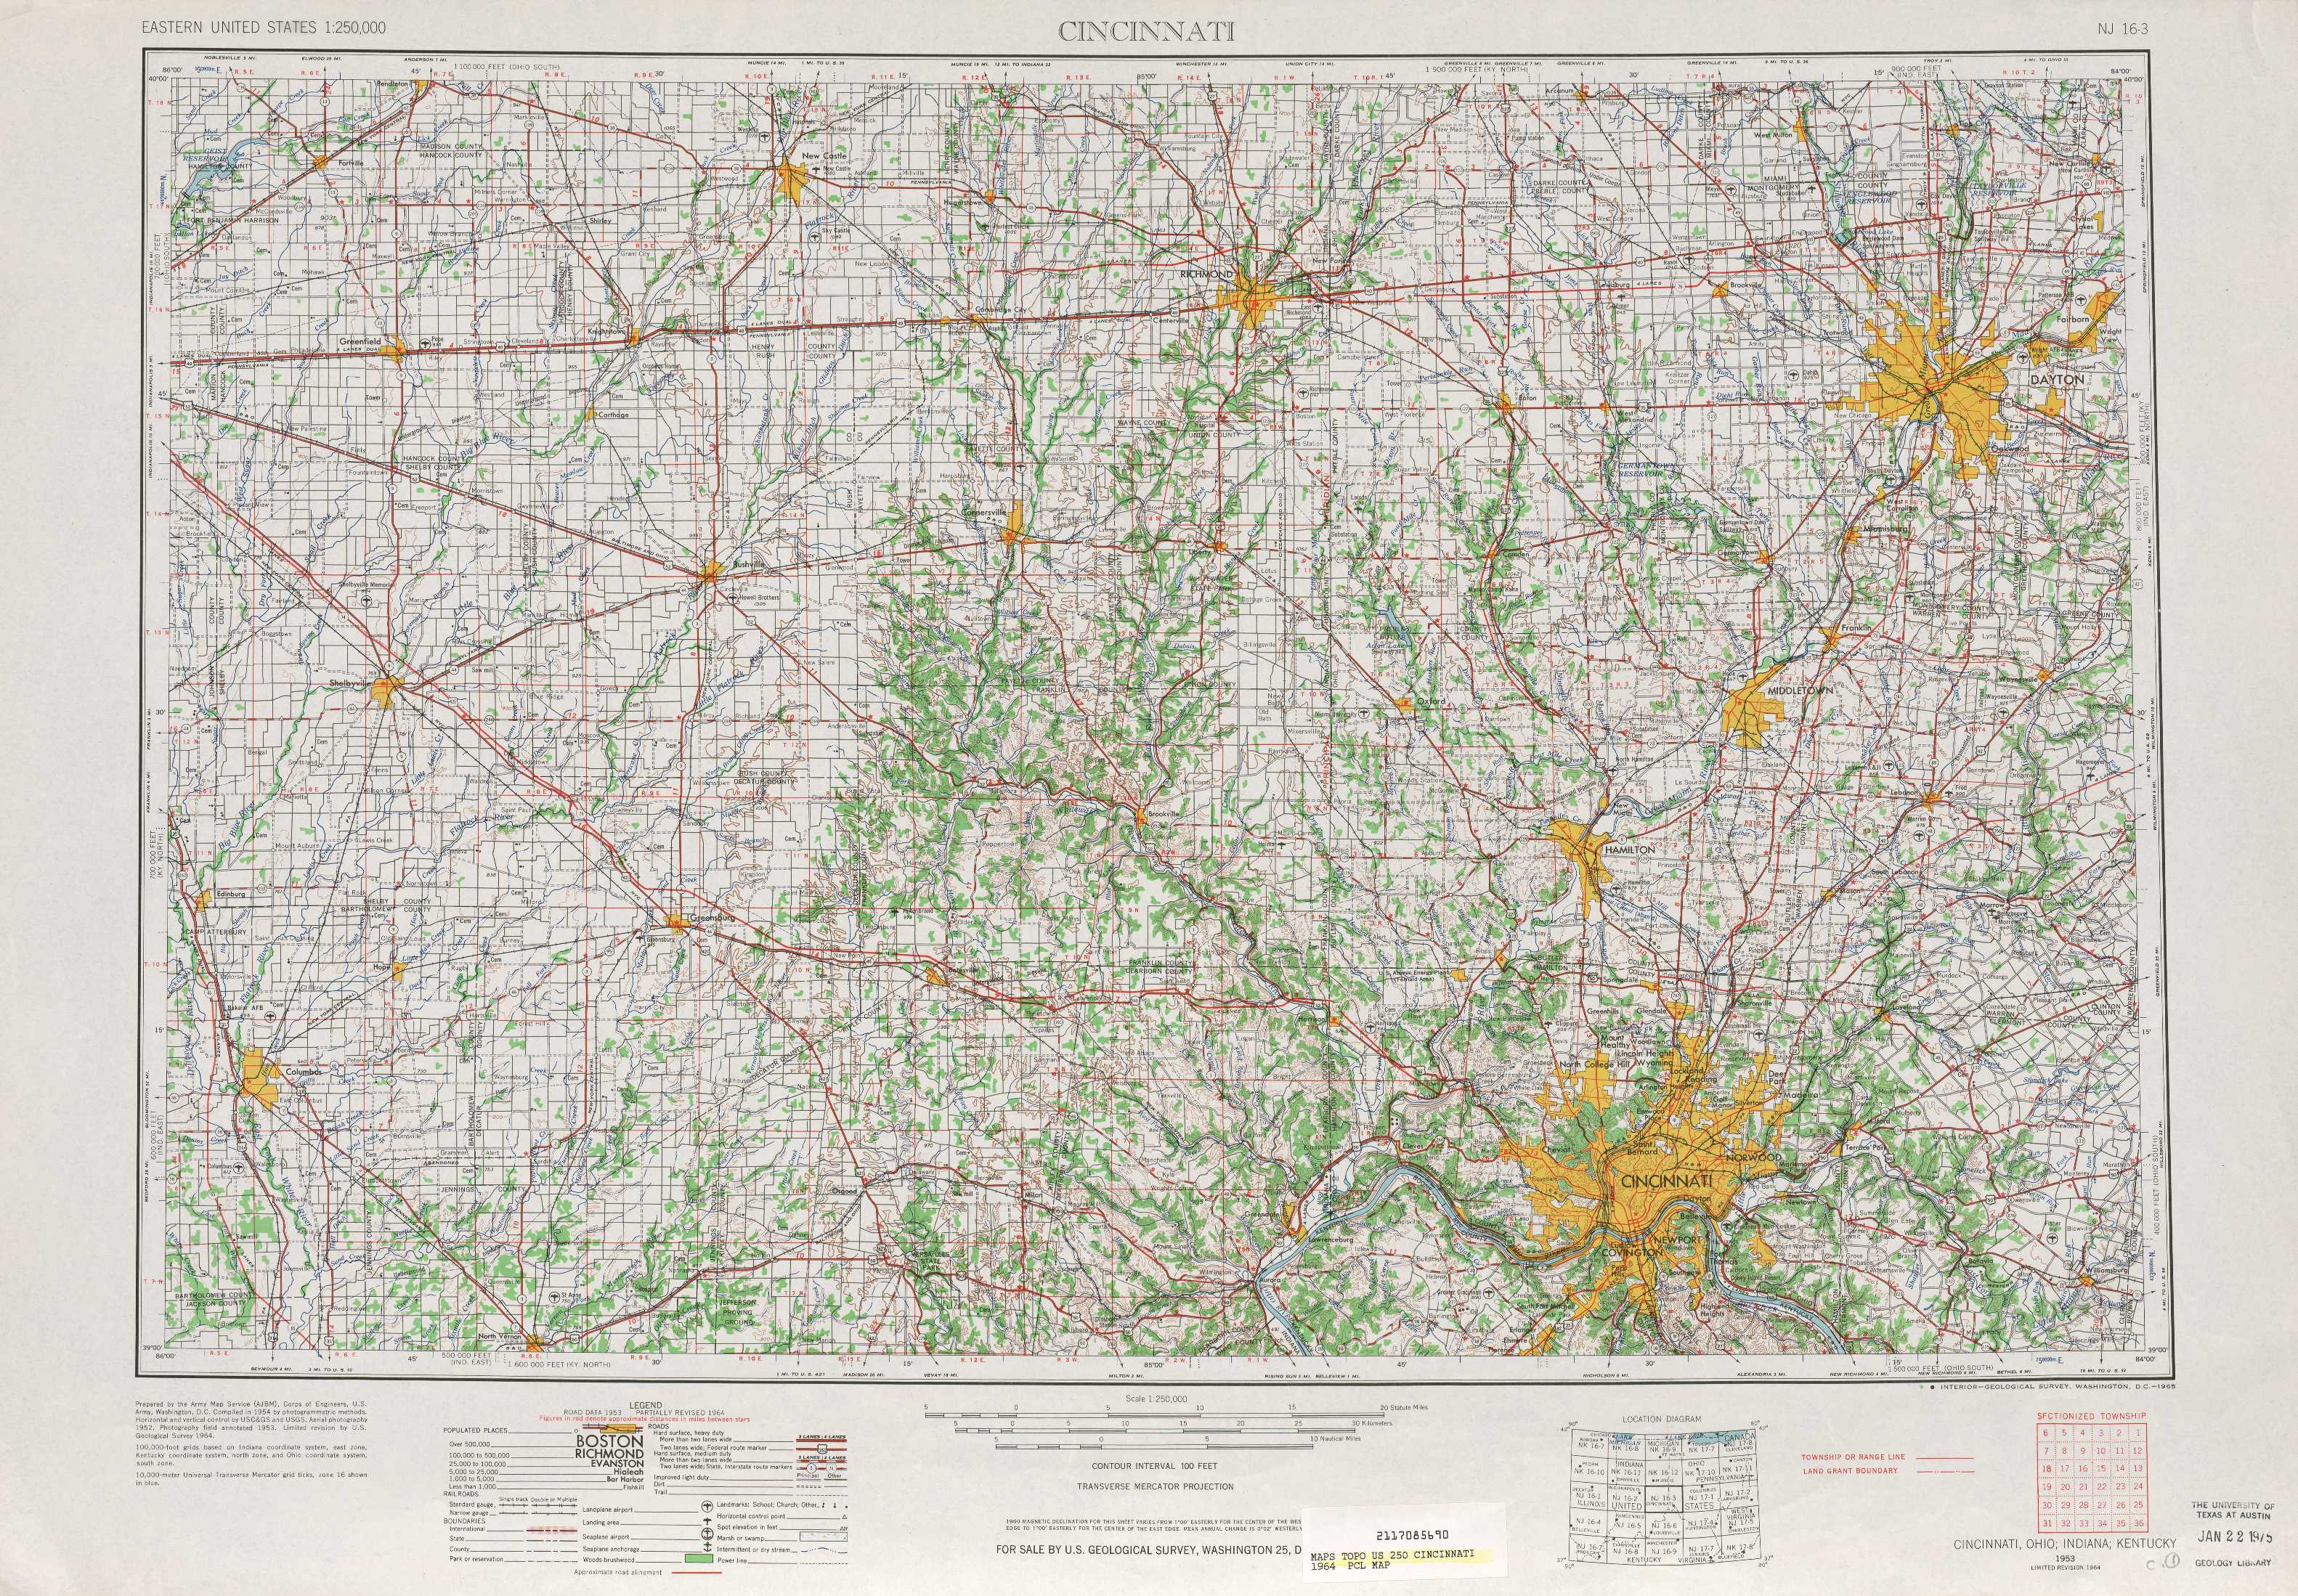 Cincinnati Topographic Maps, In, Oh, Ky - Usgs Topo Quad 39084A1 At - Usgs Printable Maps